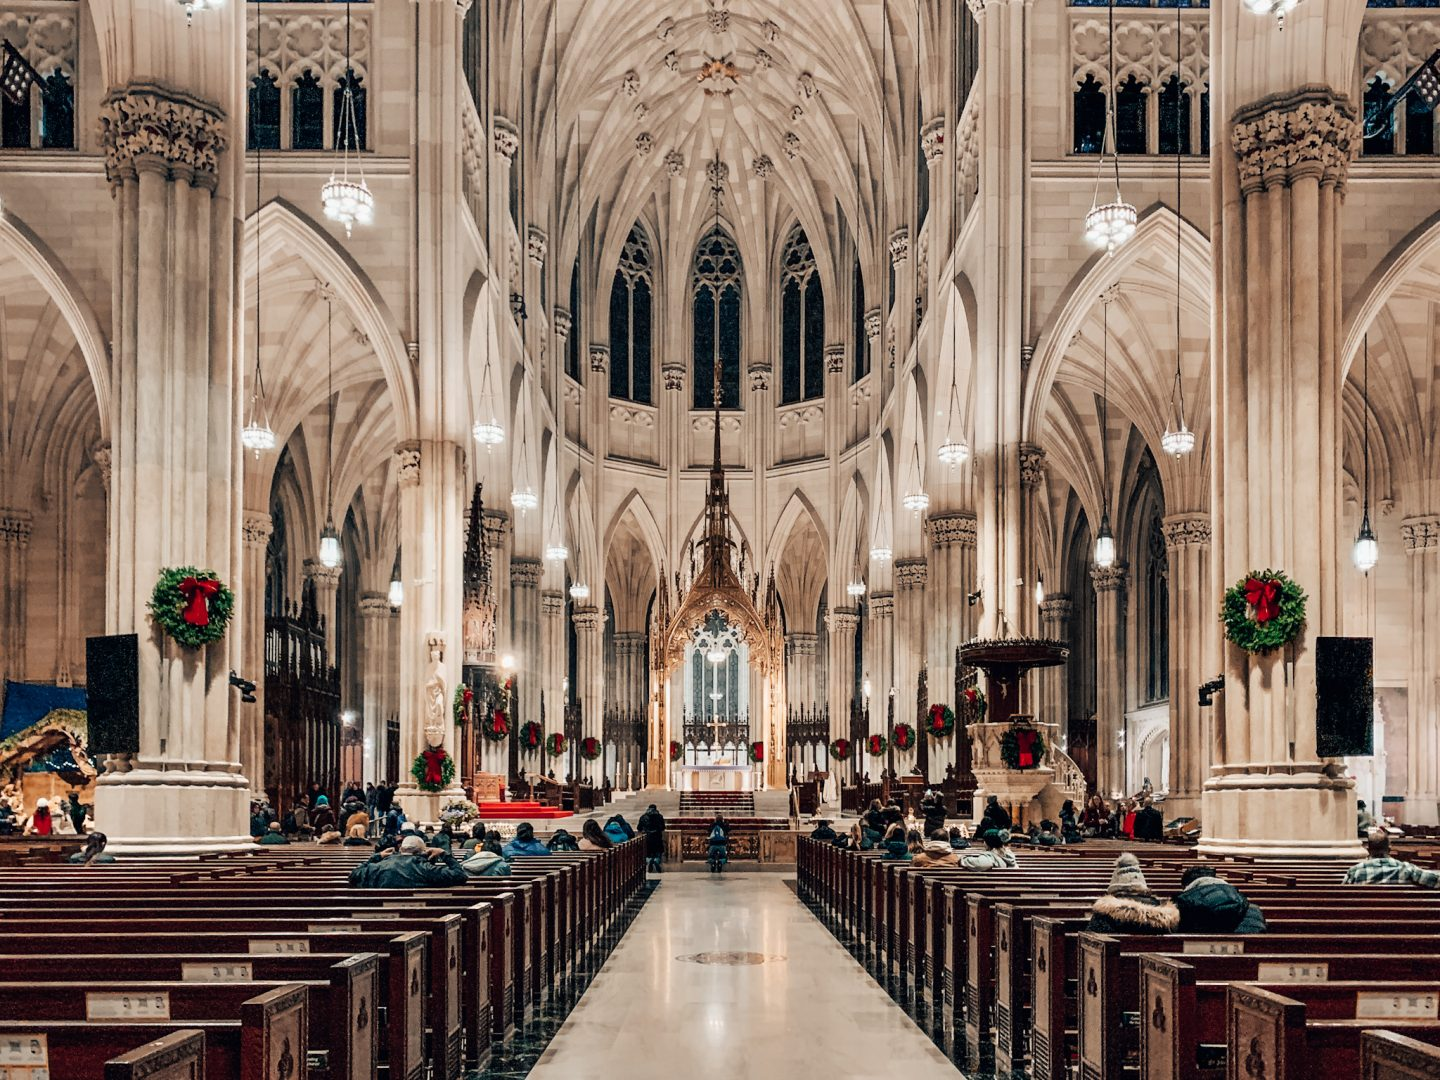 St. Patrick's Cathedral in New York City around the holidays!